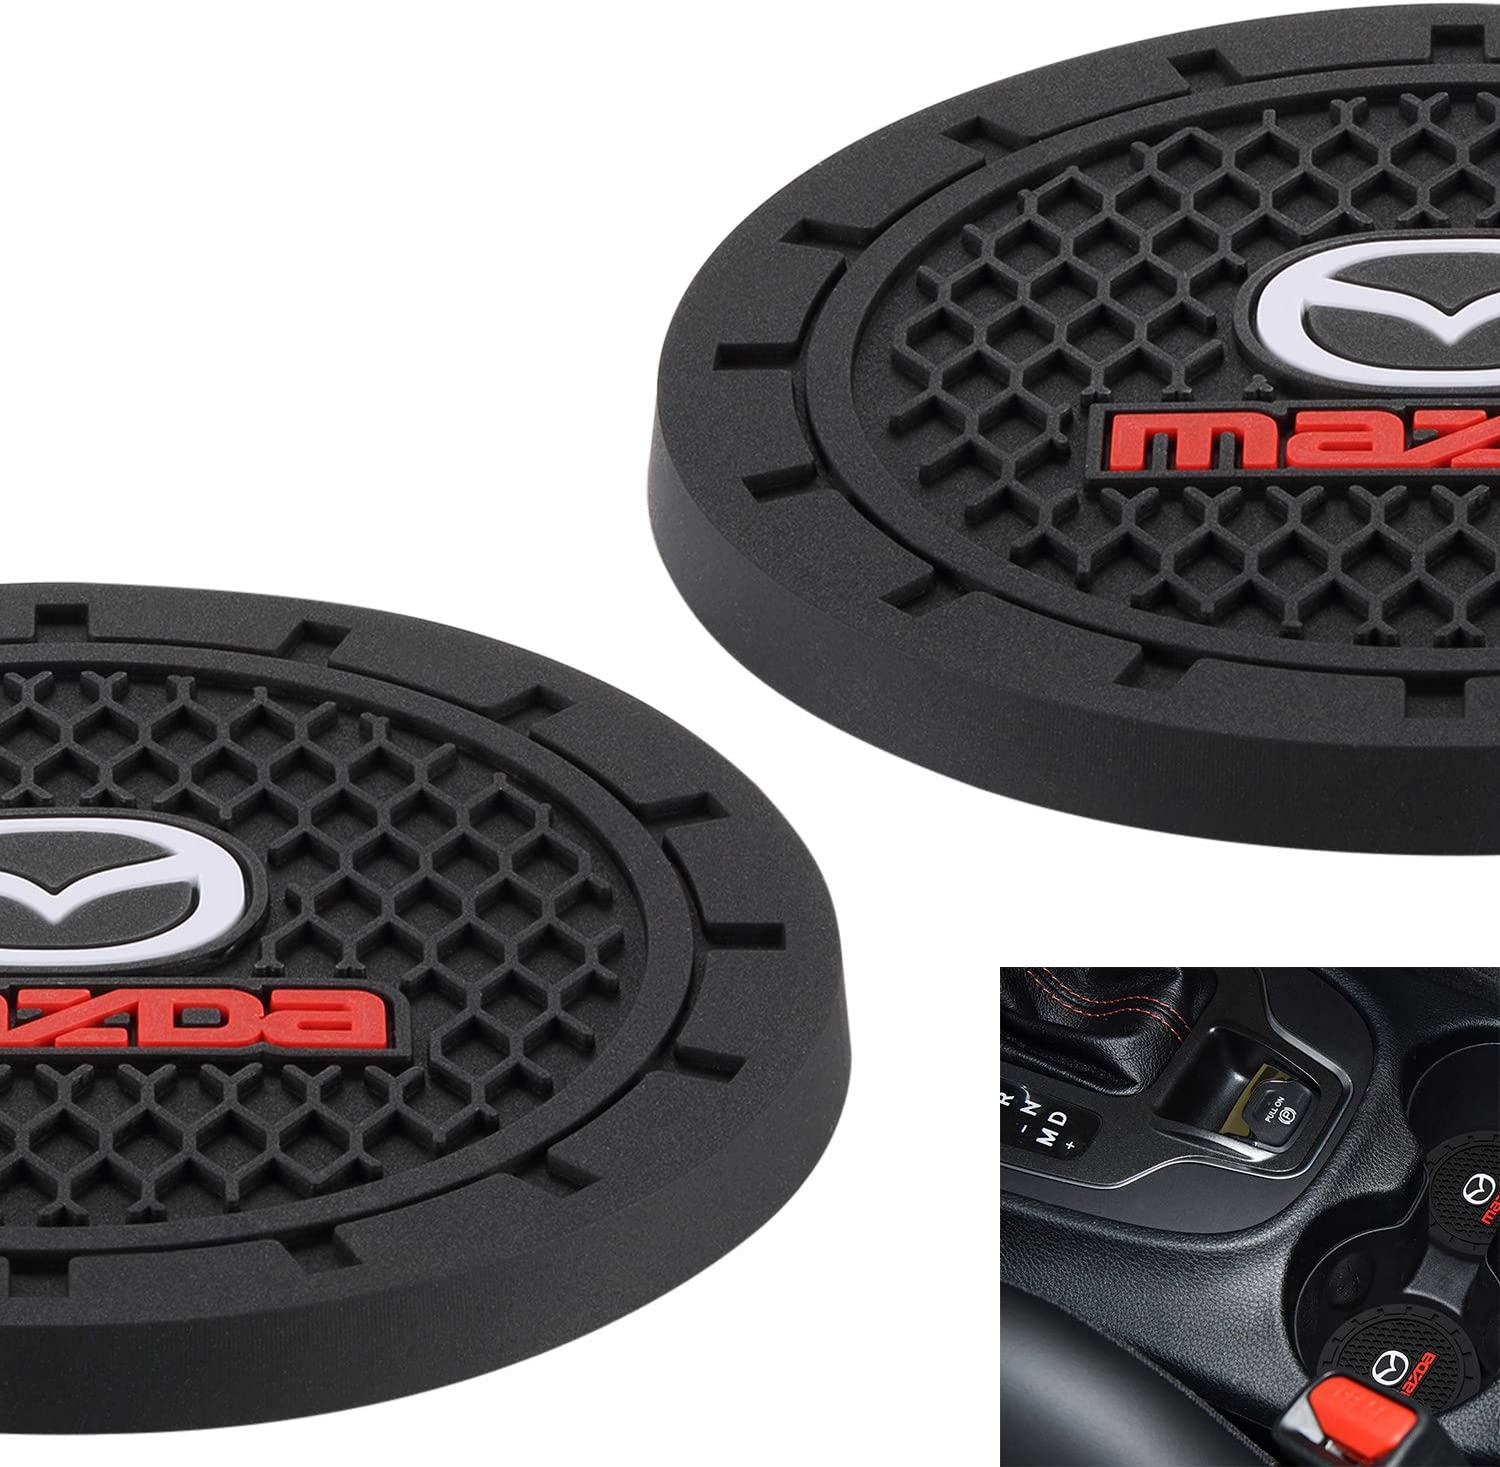 AOOOOP Universal Vehicle Cup Holder Insert Coaster Car Interior Accessories Set of 2, 2.75 Diameter Silicone Anti Slip Cup Mat for All Cars